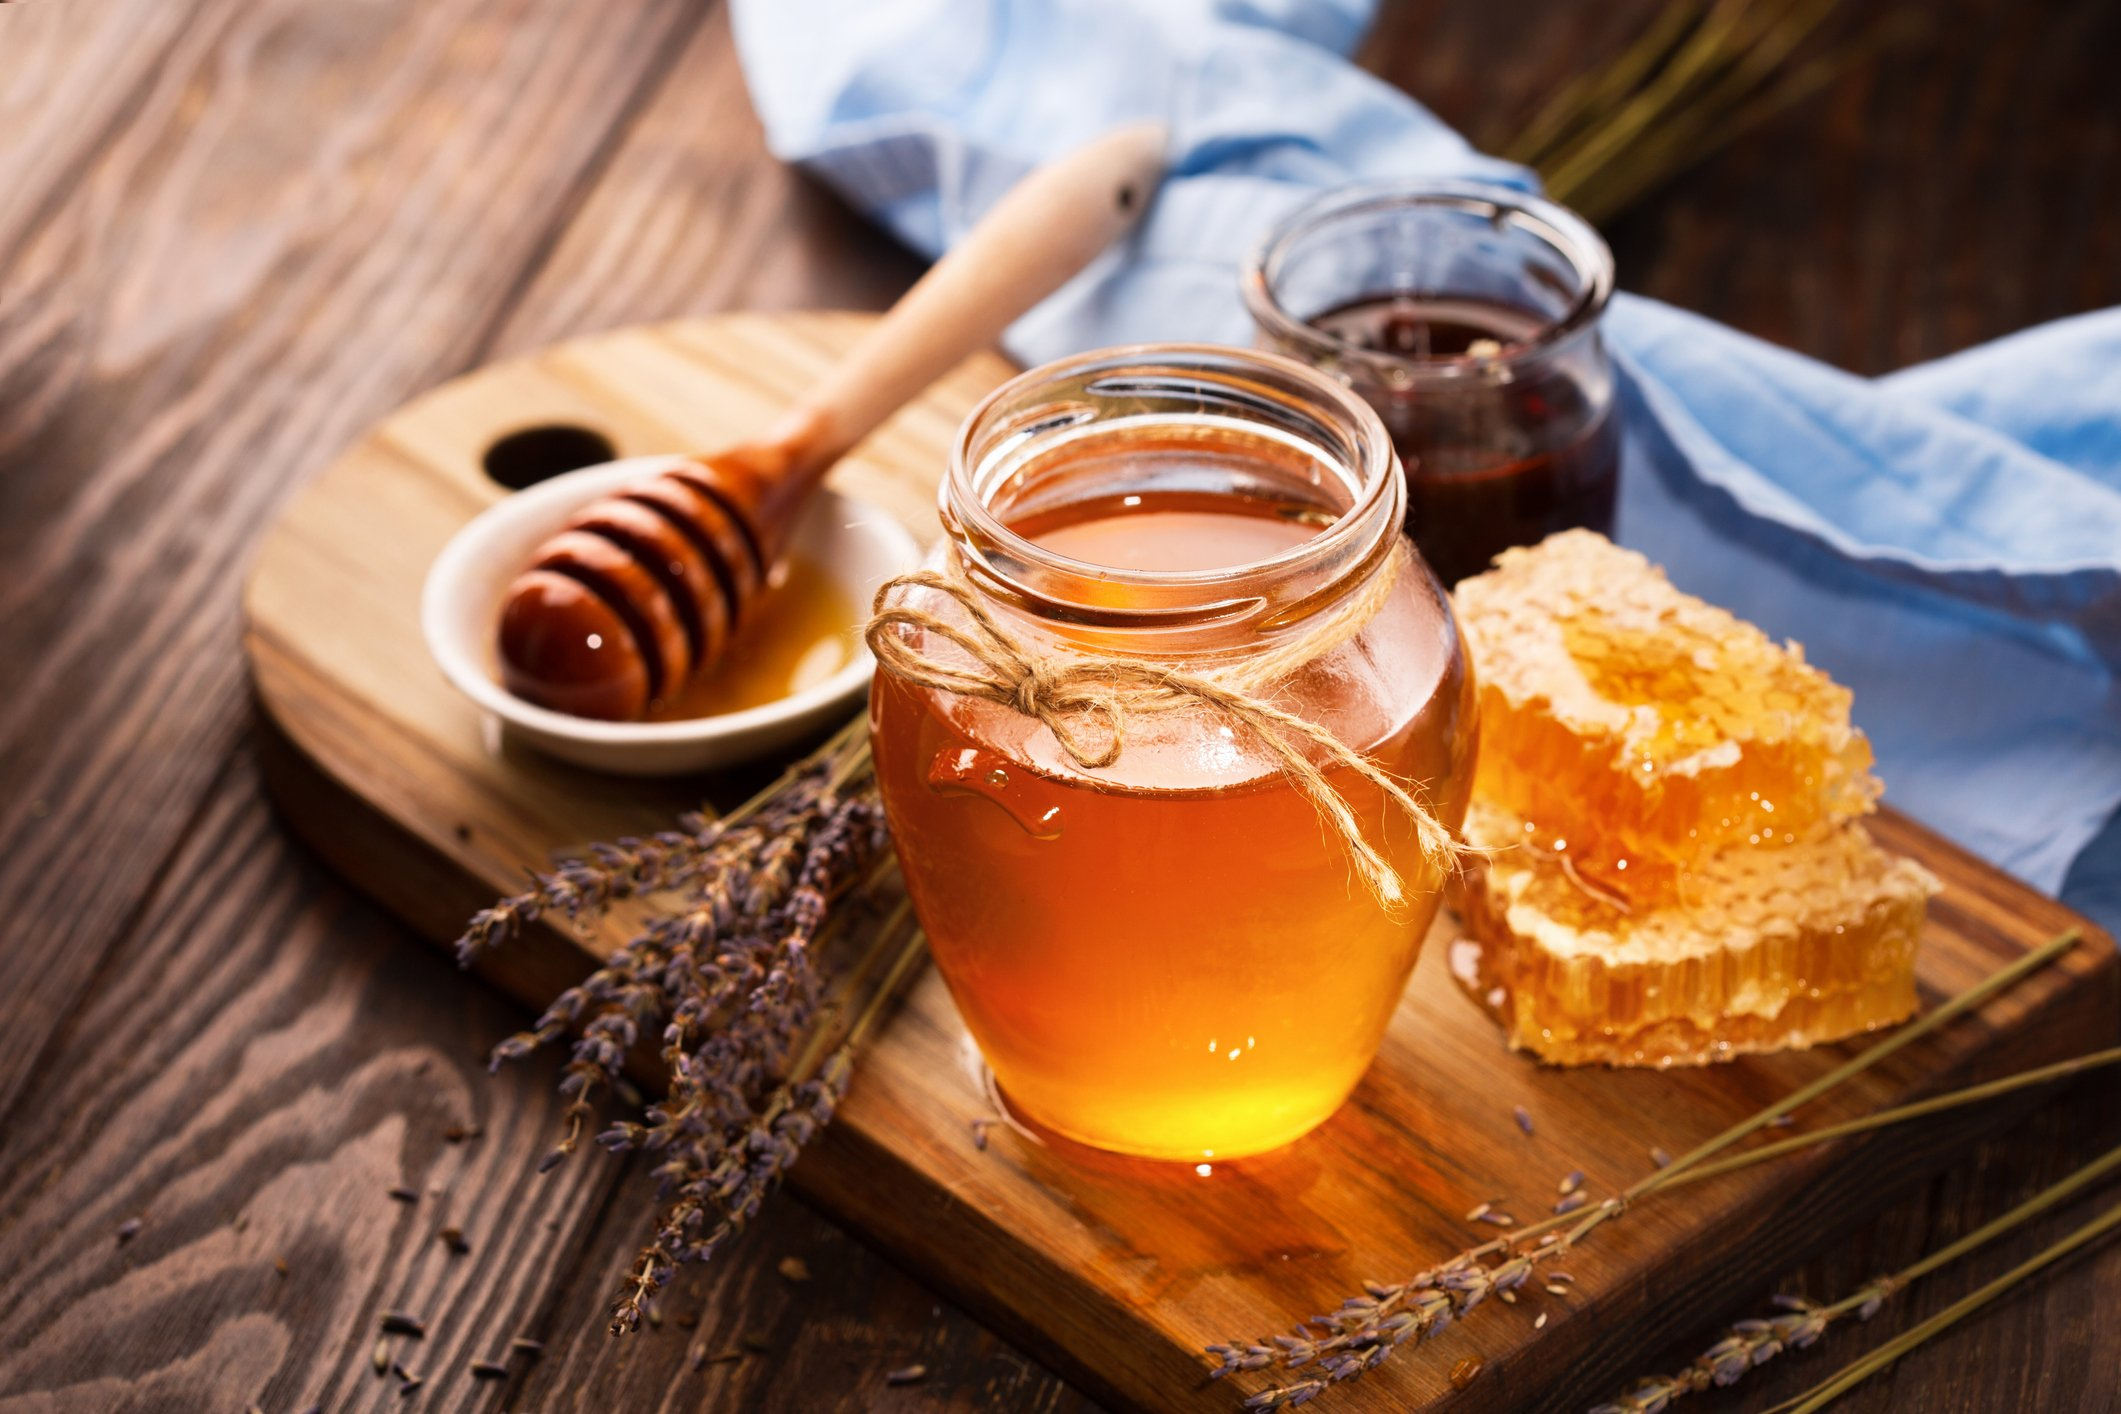 The most popular variety of honey in Turkey is pine honey, most of which comes from the Aegean region. (iStock Photo)